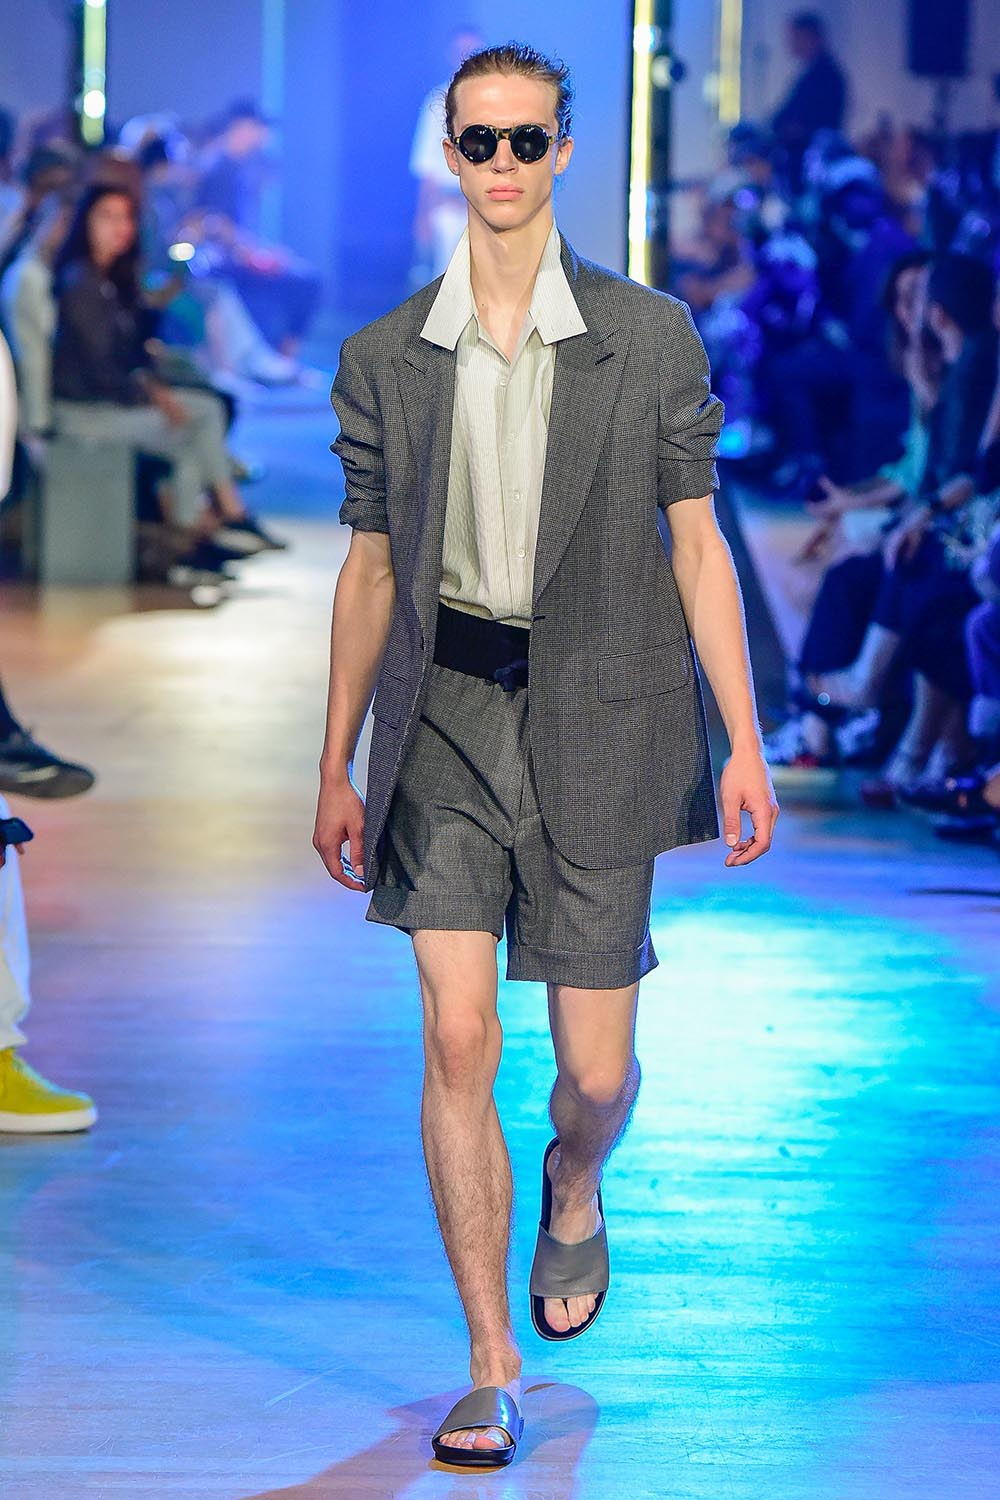 Cerruti 1881 Paris Fashion Week Men's SS19 - Sagaboi - Look 23